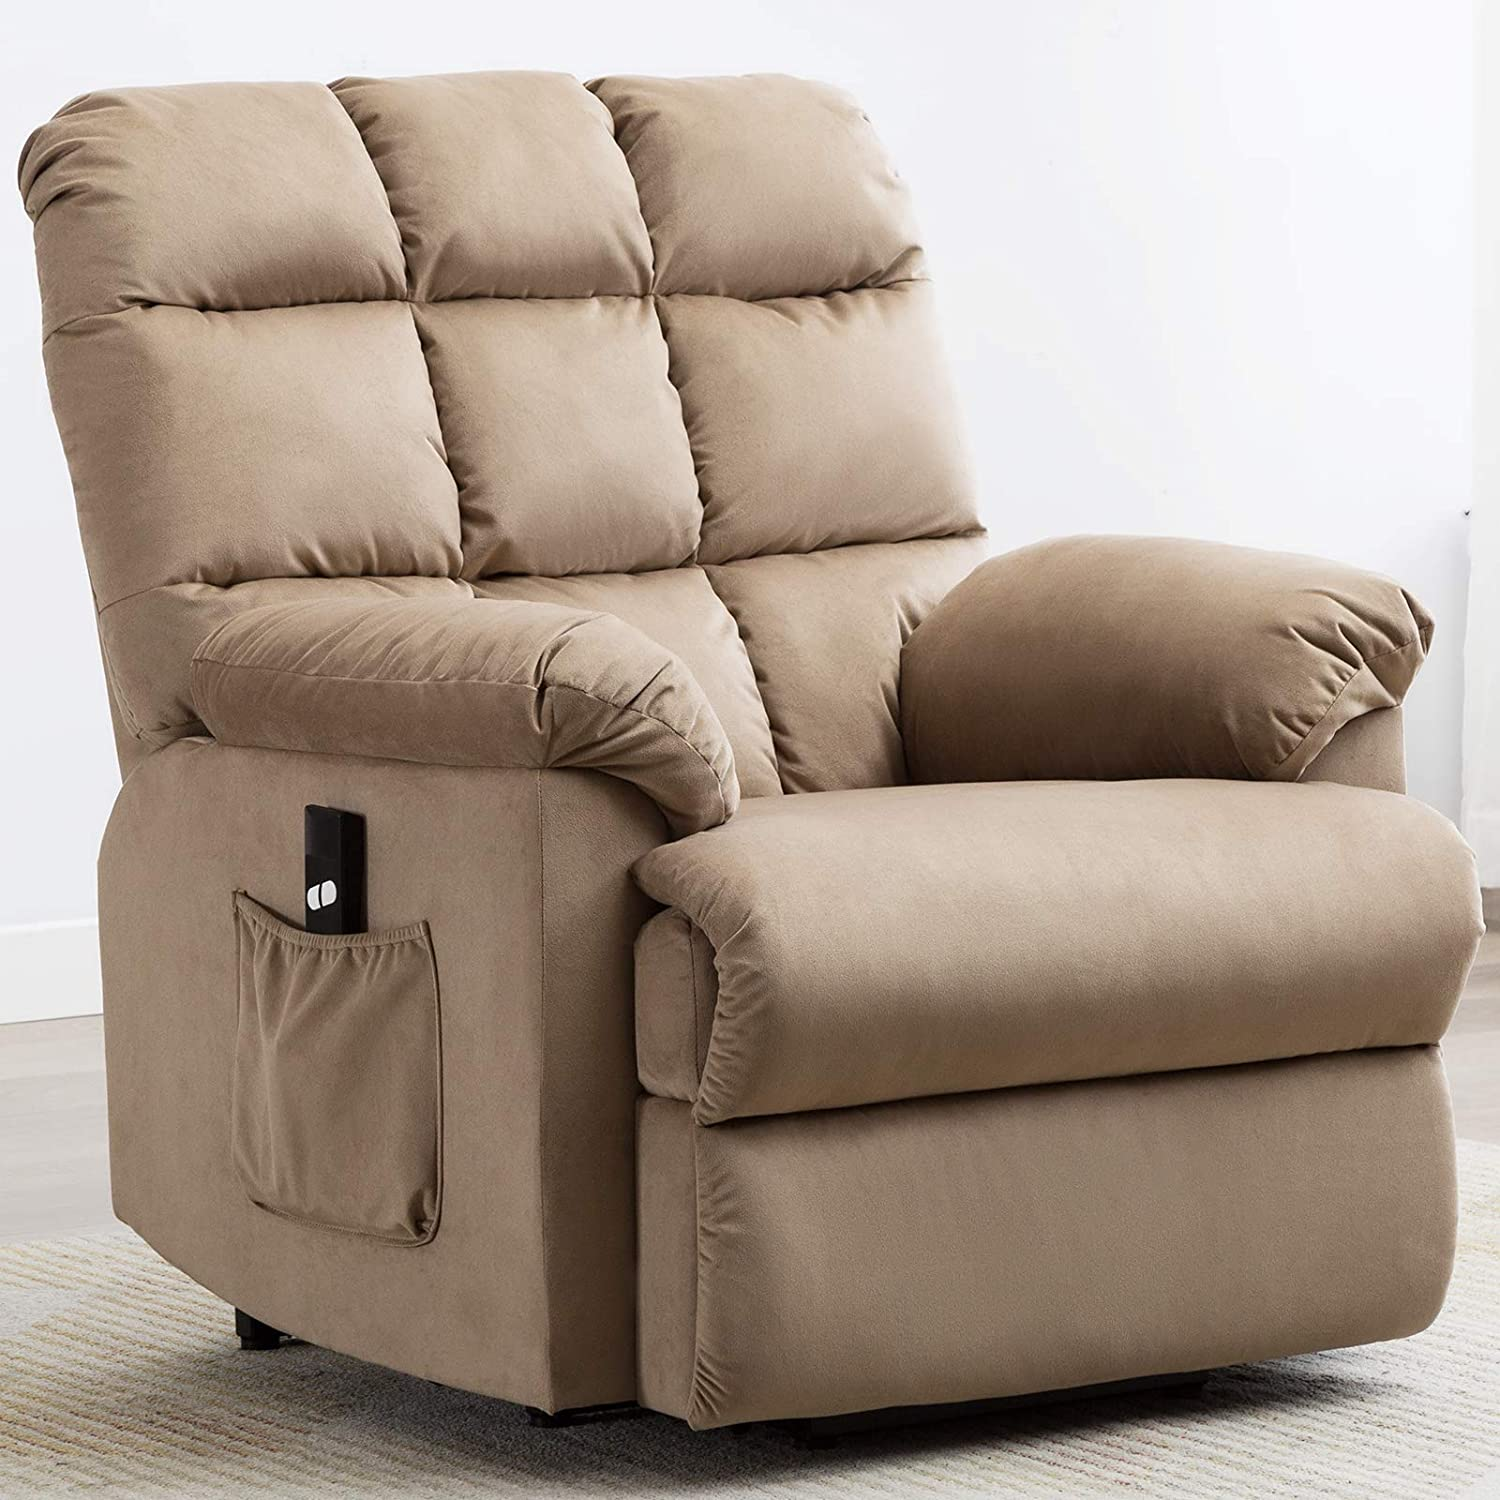 ANJ Power Lift Recliner Chair Safety Motion Reclining Chair for Elderly - Heavy Duty Fabric Overstuffed Sofa for Living Room with Side Pocket (Mocha)